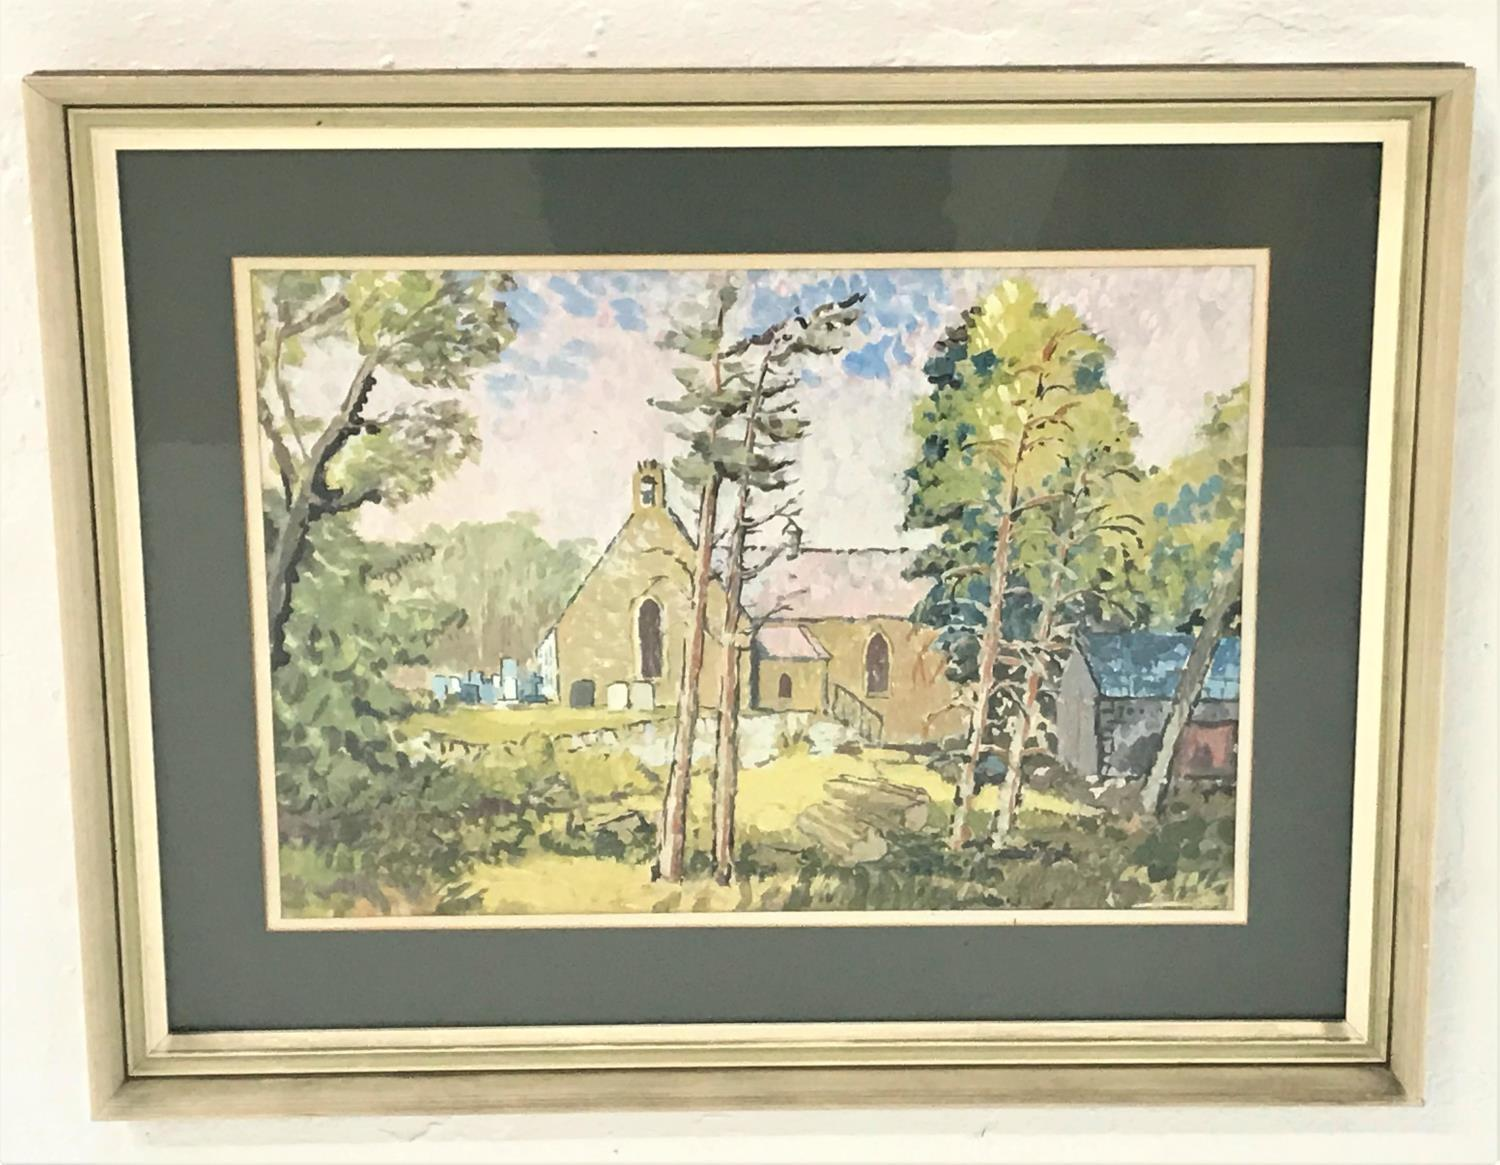 Lot 391 - AFTER NORMAN YOUNG Parish Church, watercolour, 34.5cm x 50.5cm